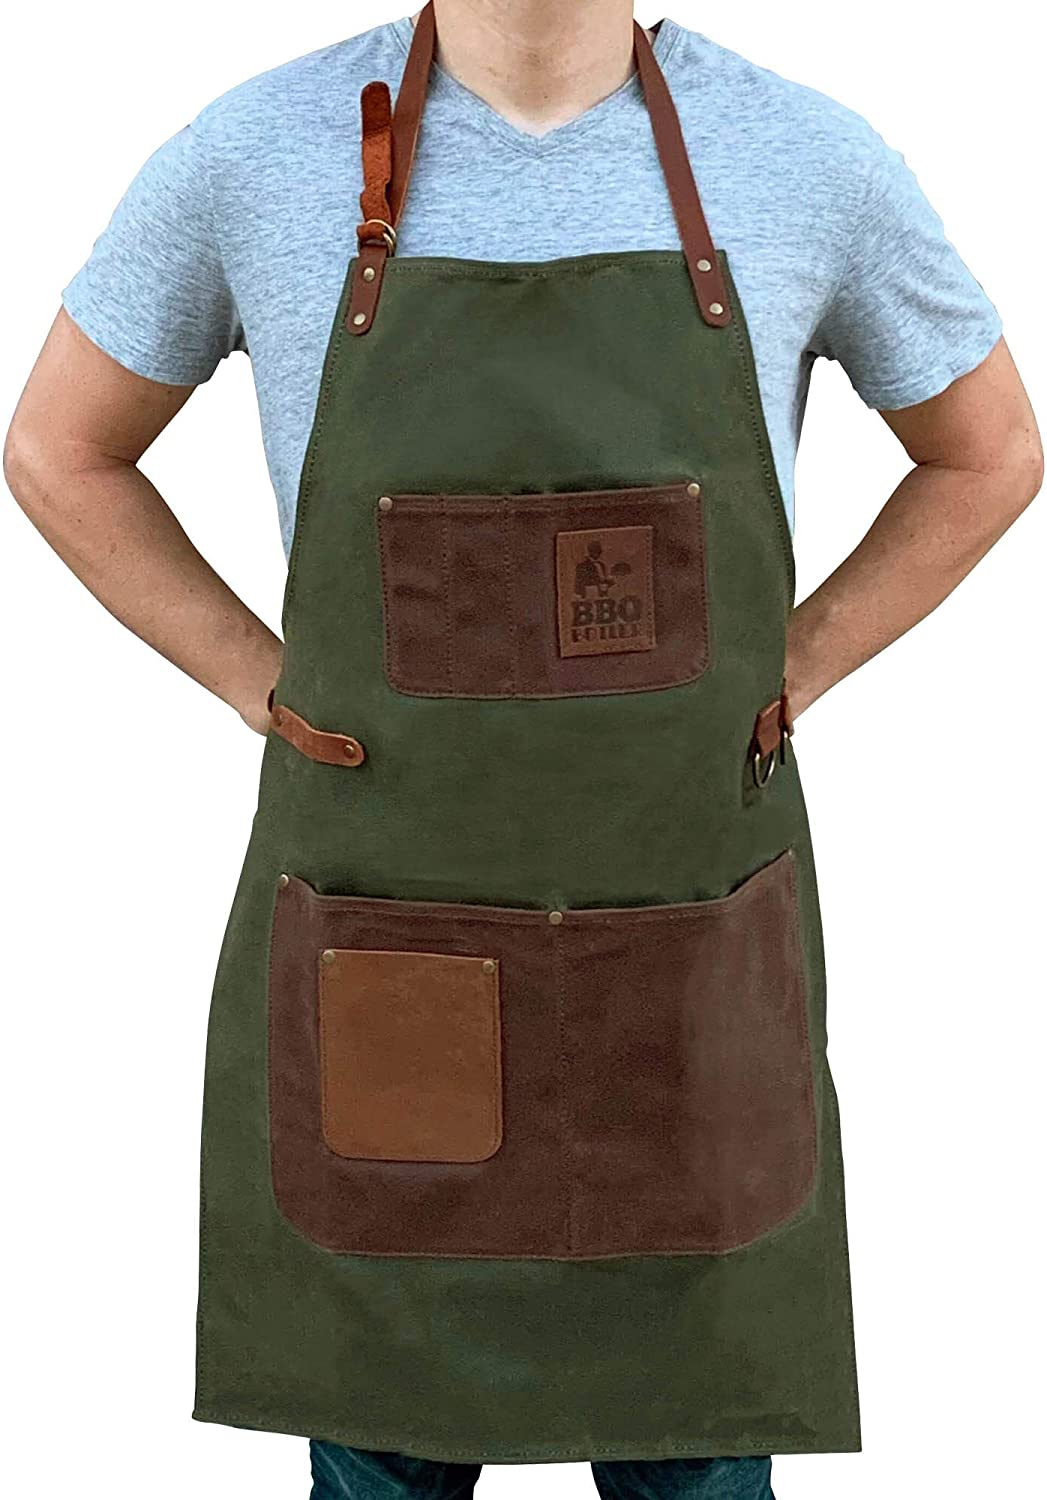 valentines-gifts-for-him-apron